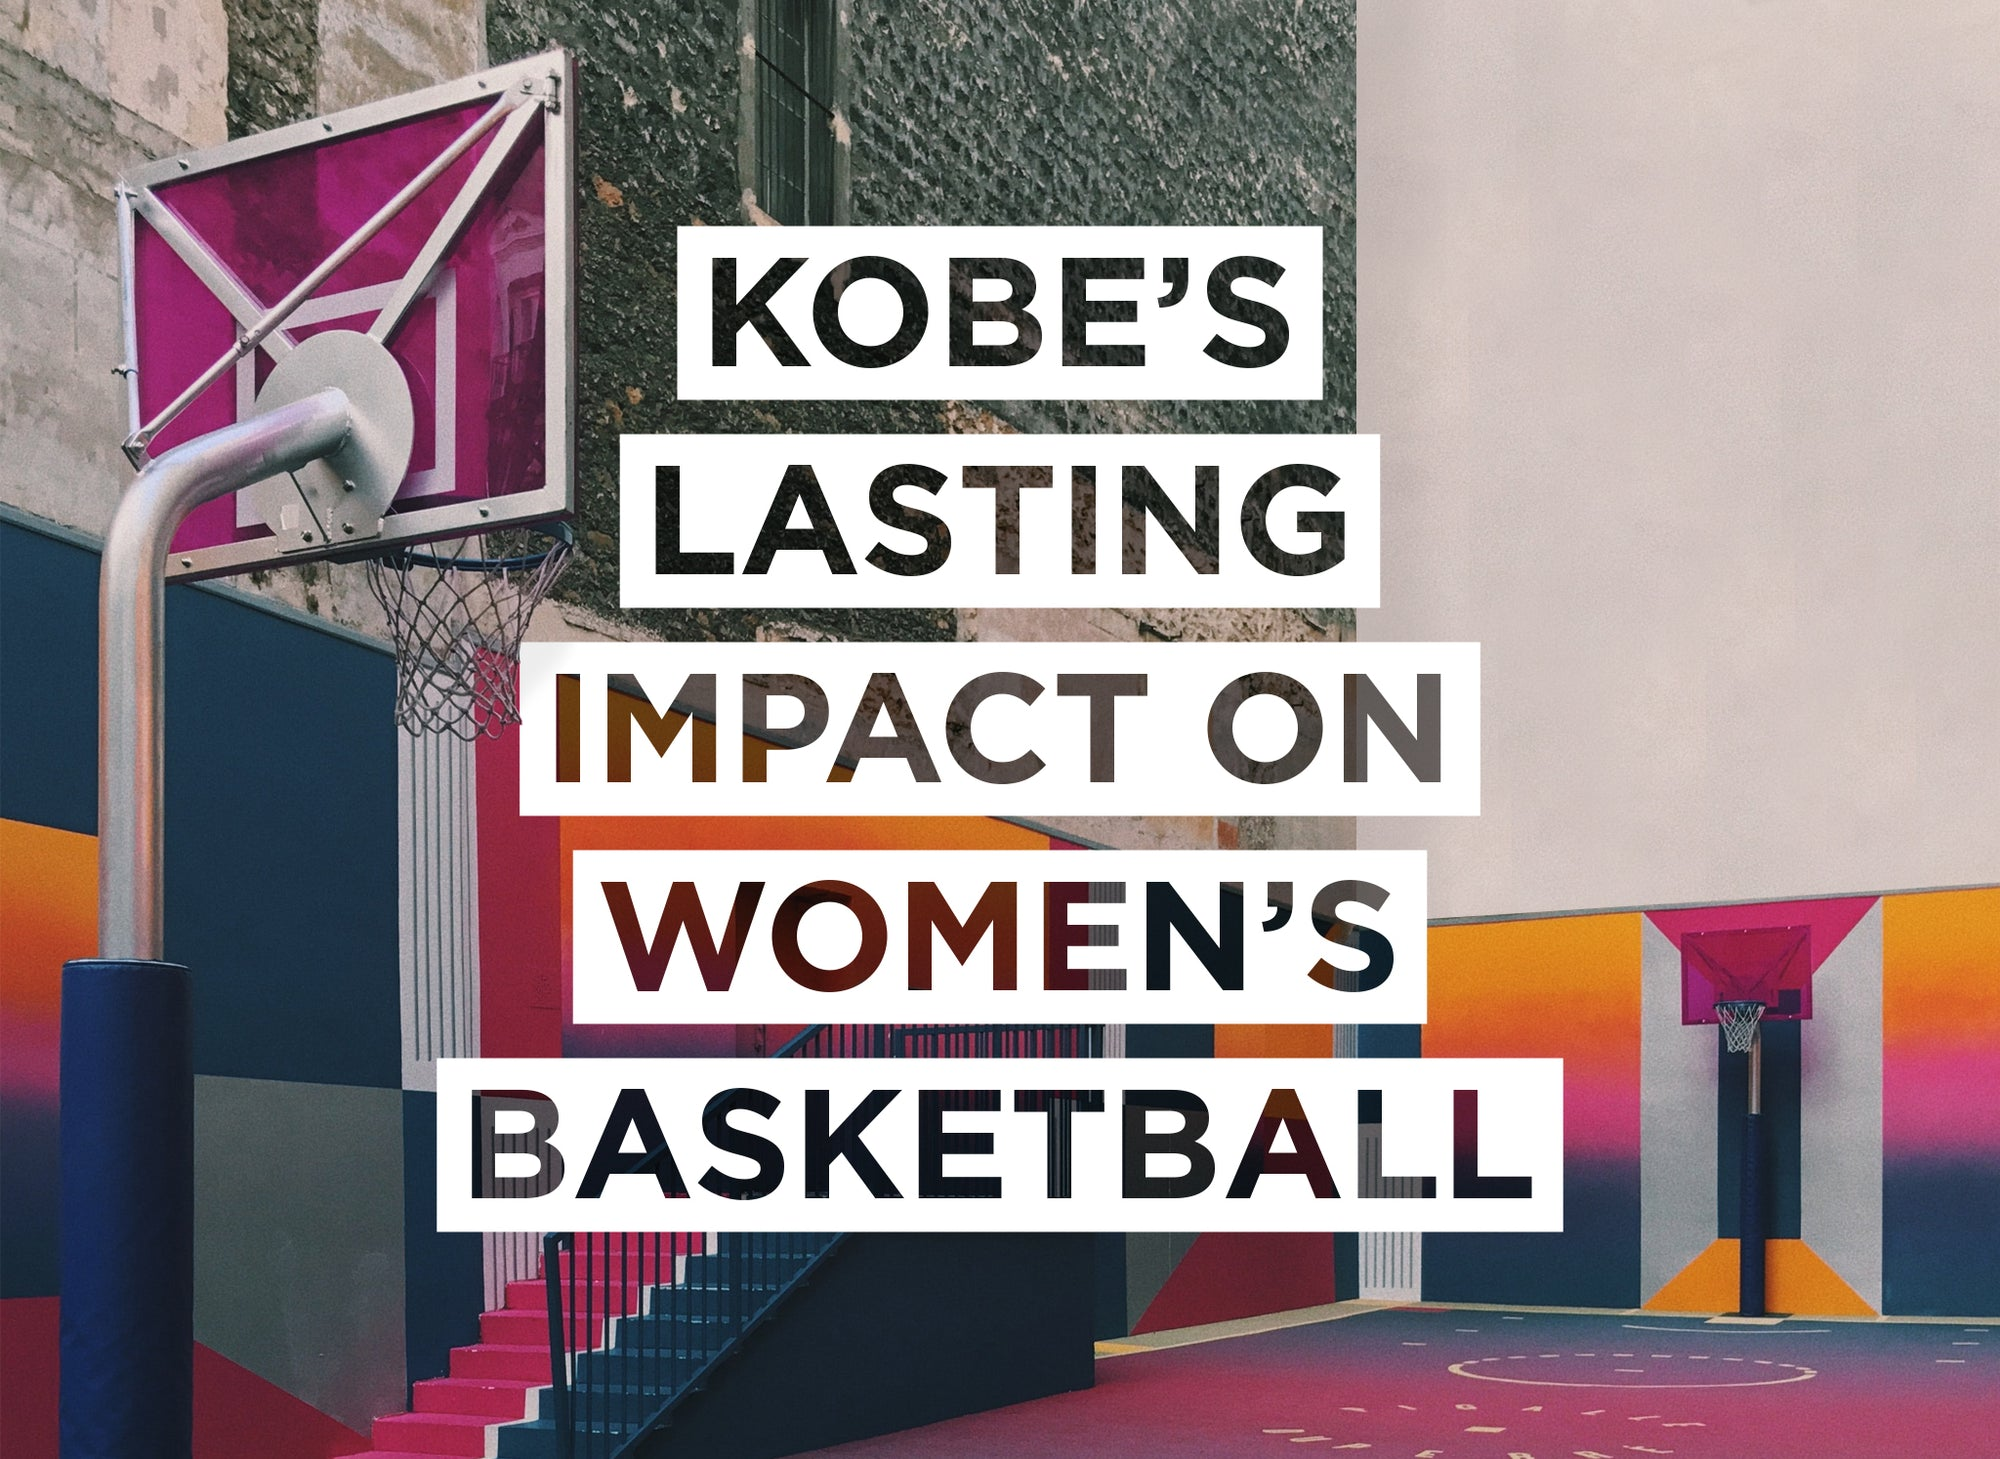 Remembering Kobe's lasting impact on Women's Basketball